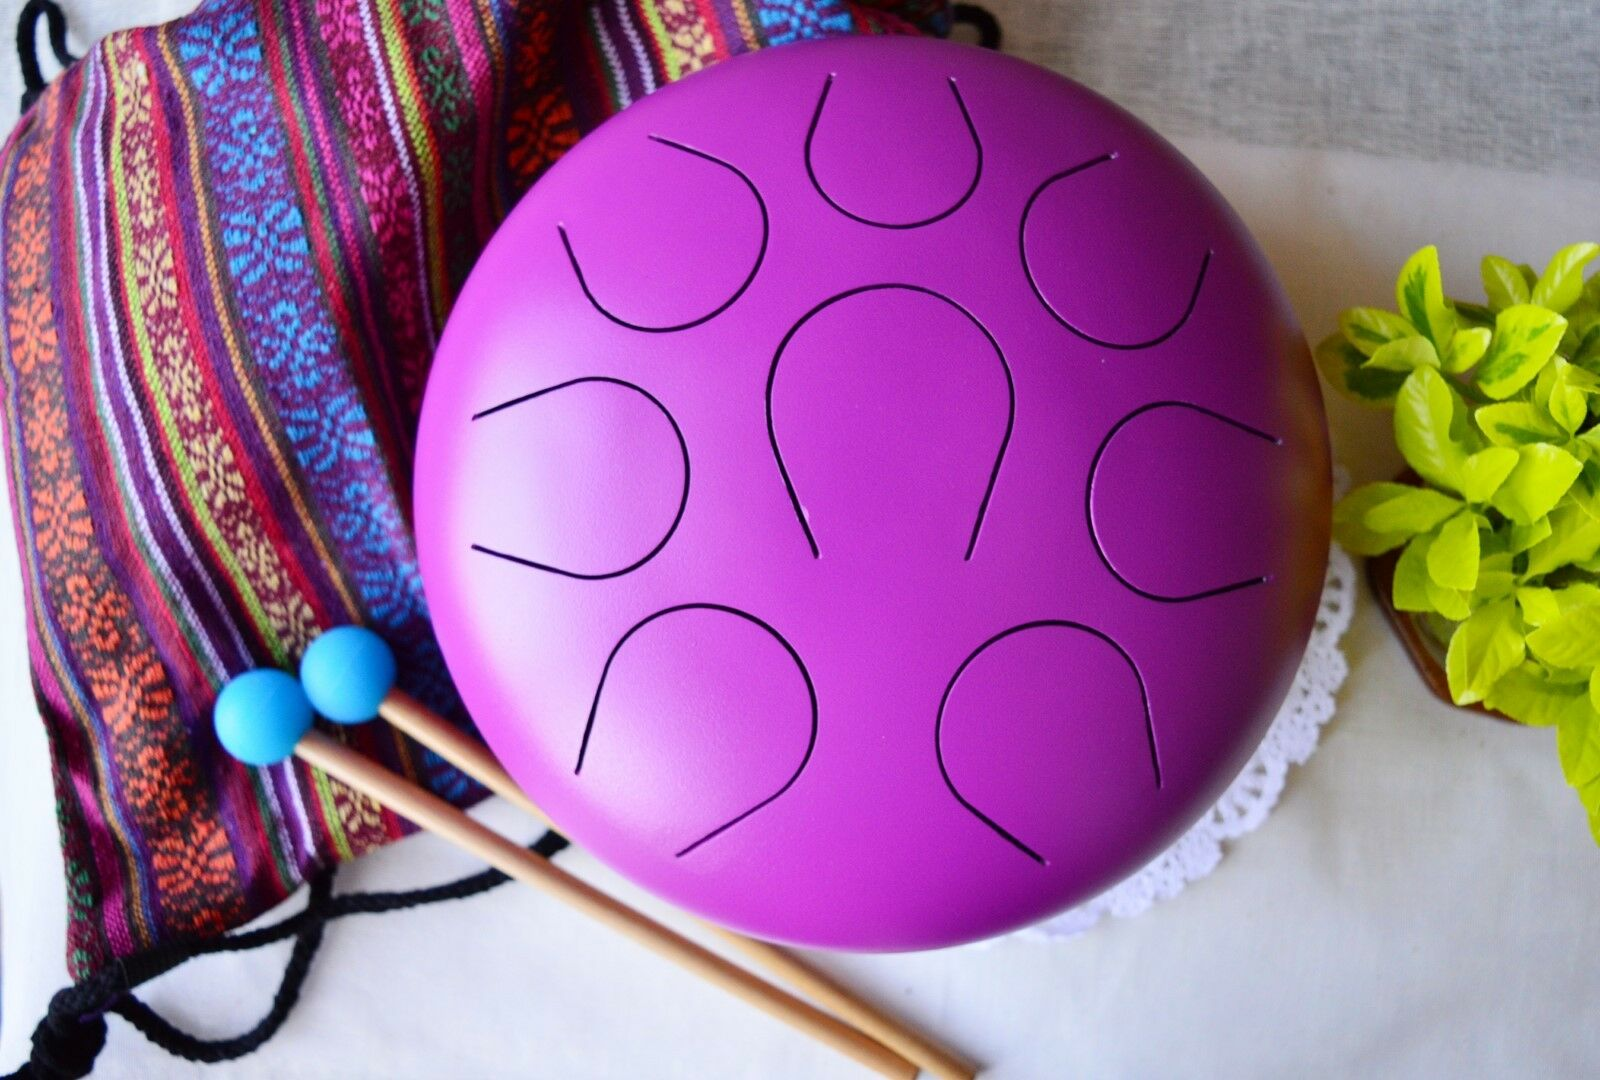 WuYou 10in Steel Tongue Drum Handpan Percussion Drum Set for Theropy Meditation